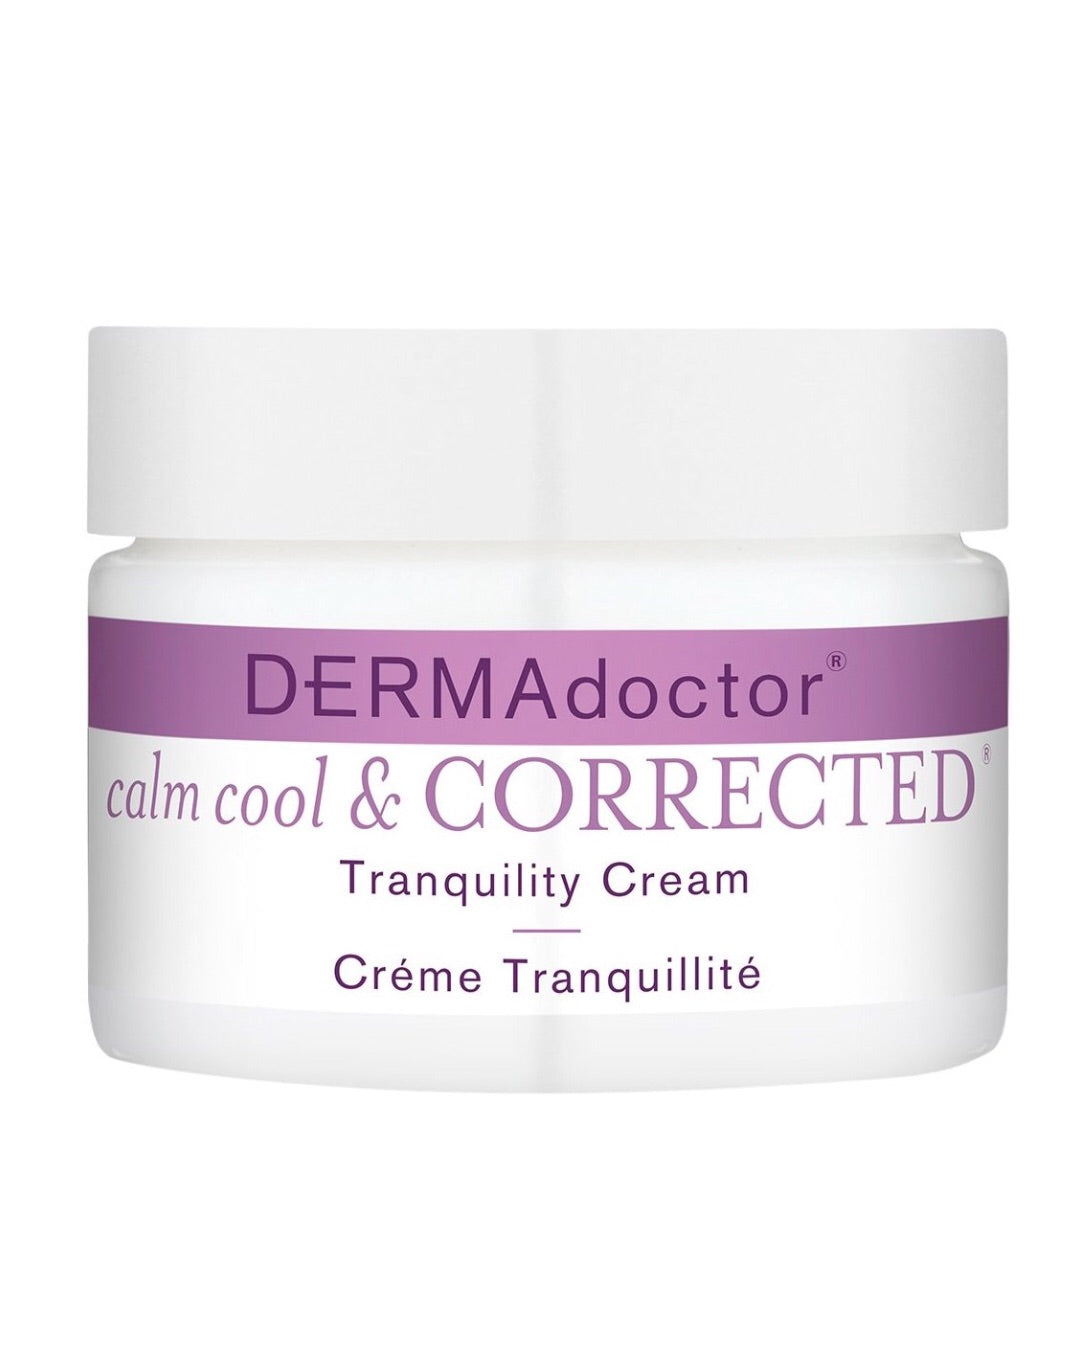 DERMAdoctor Calm, Cool & Corrected anti-redness tranquility cream - 1.7 Oz - AmericanShop ByHanan